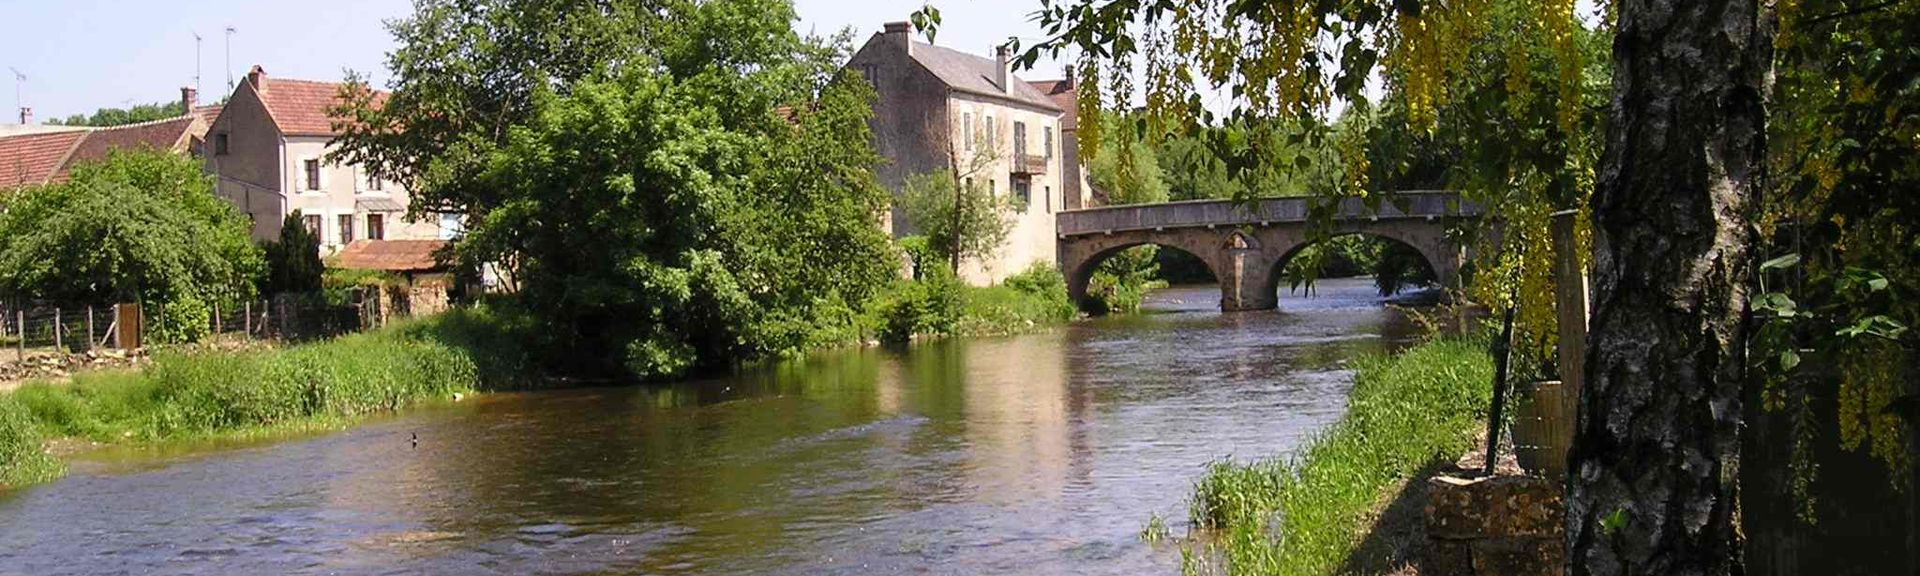 Clamecy, Nievre, France